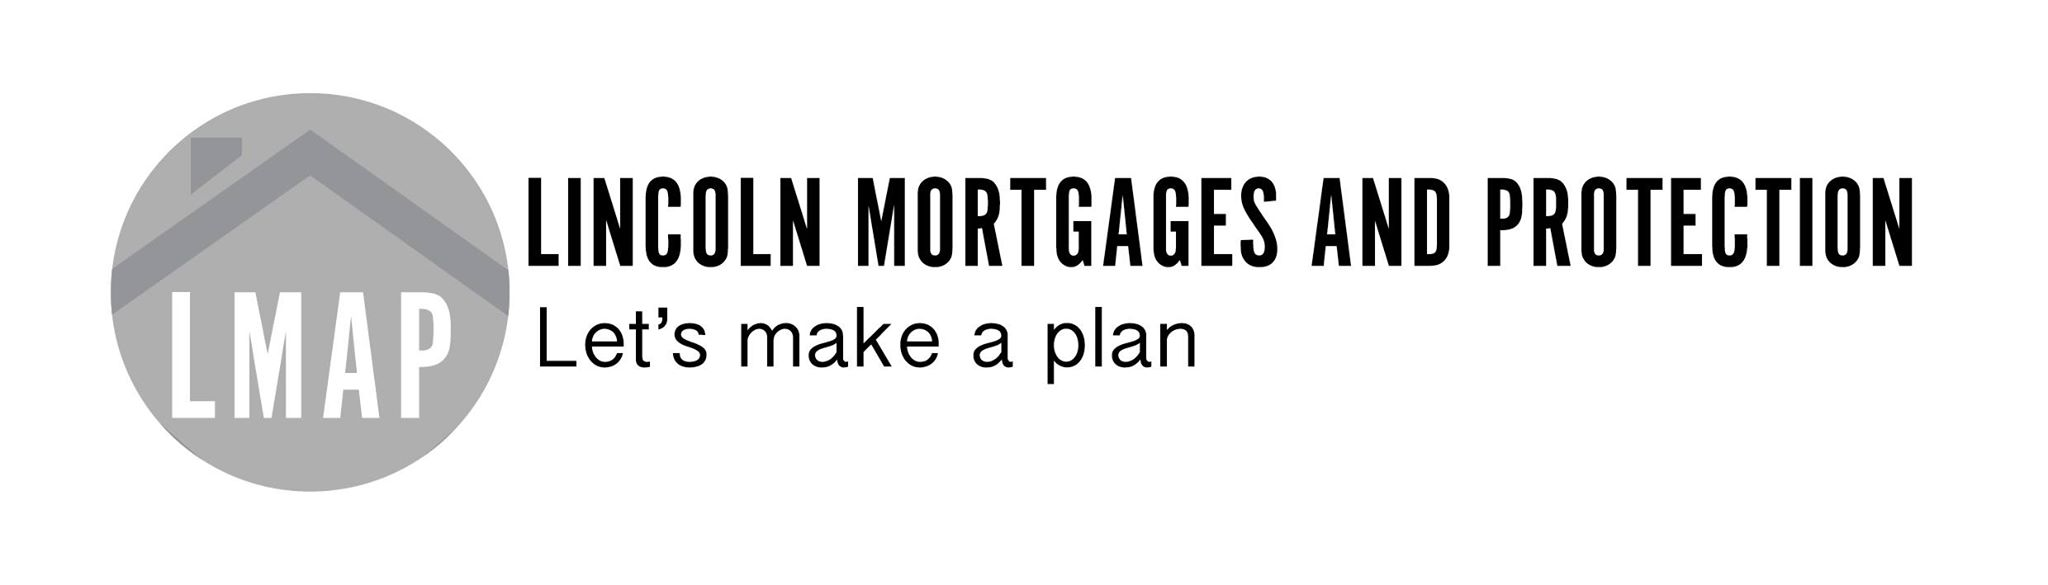 Lincoln Mortgages and Protection - Lincoln, Lincolnshire LN2 1EH - 07496 264232 | ShowMeLocal.com